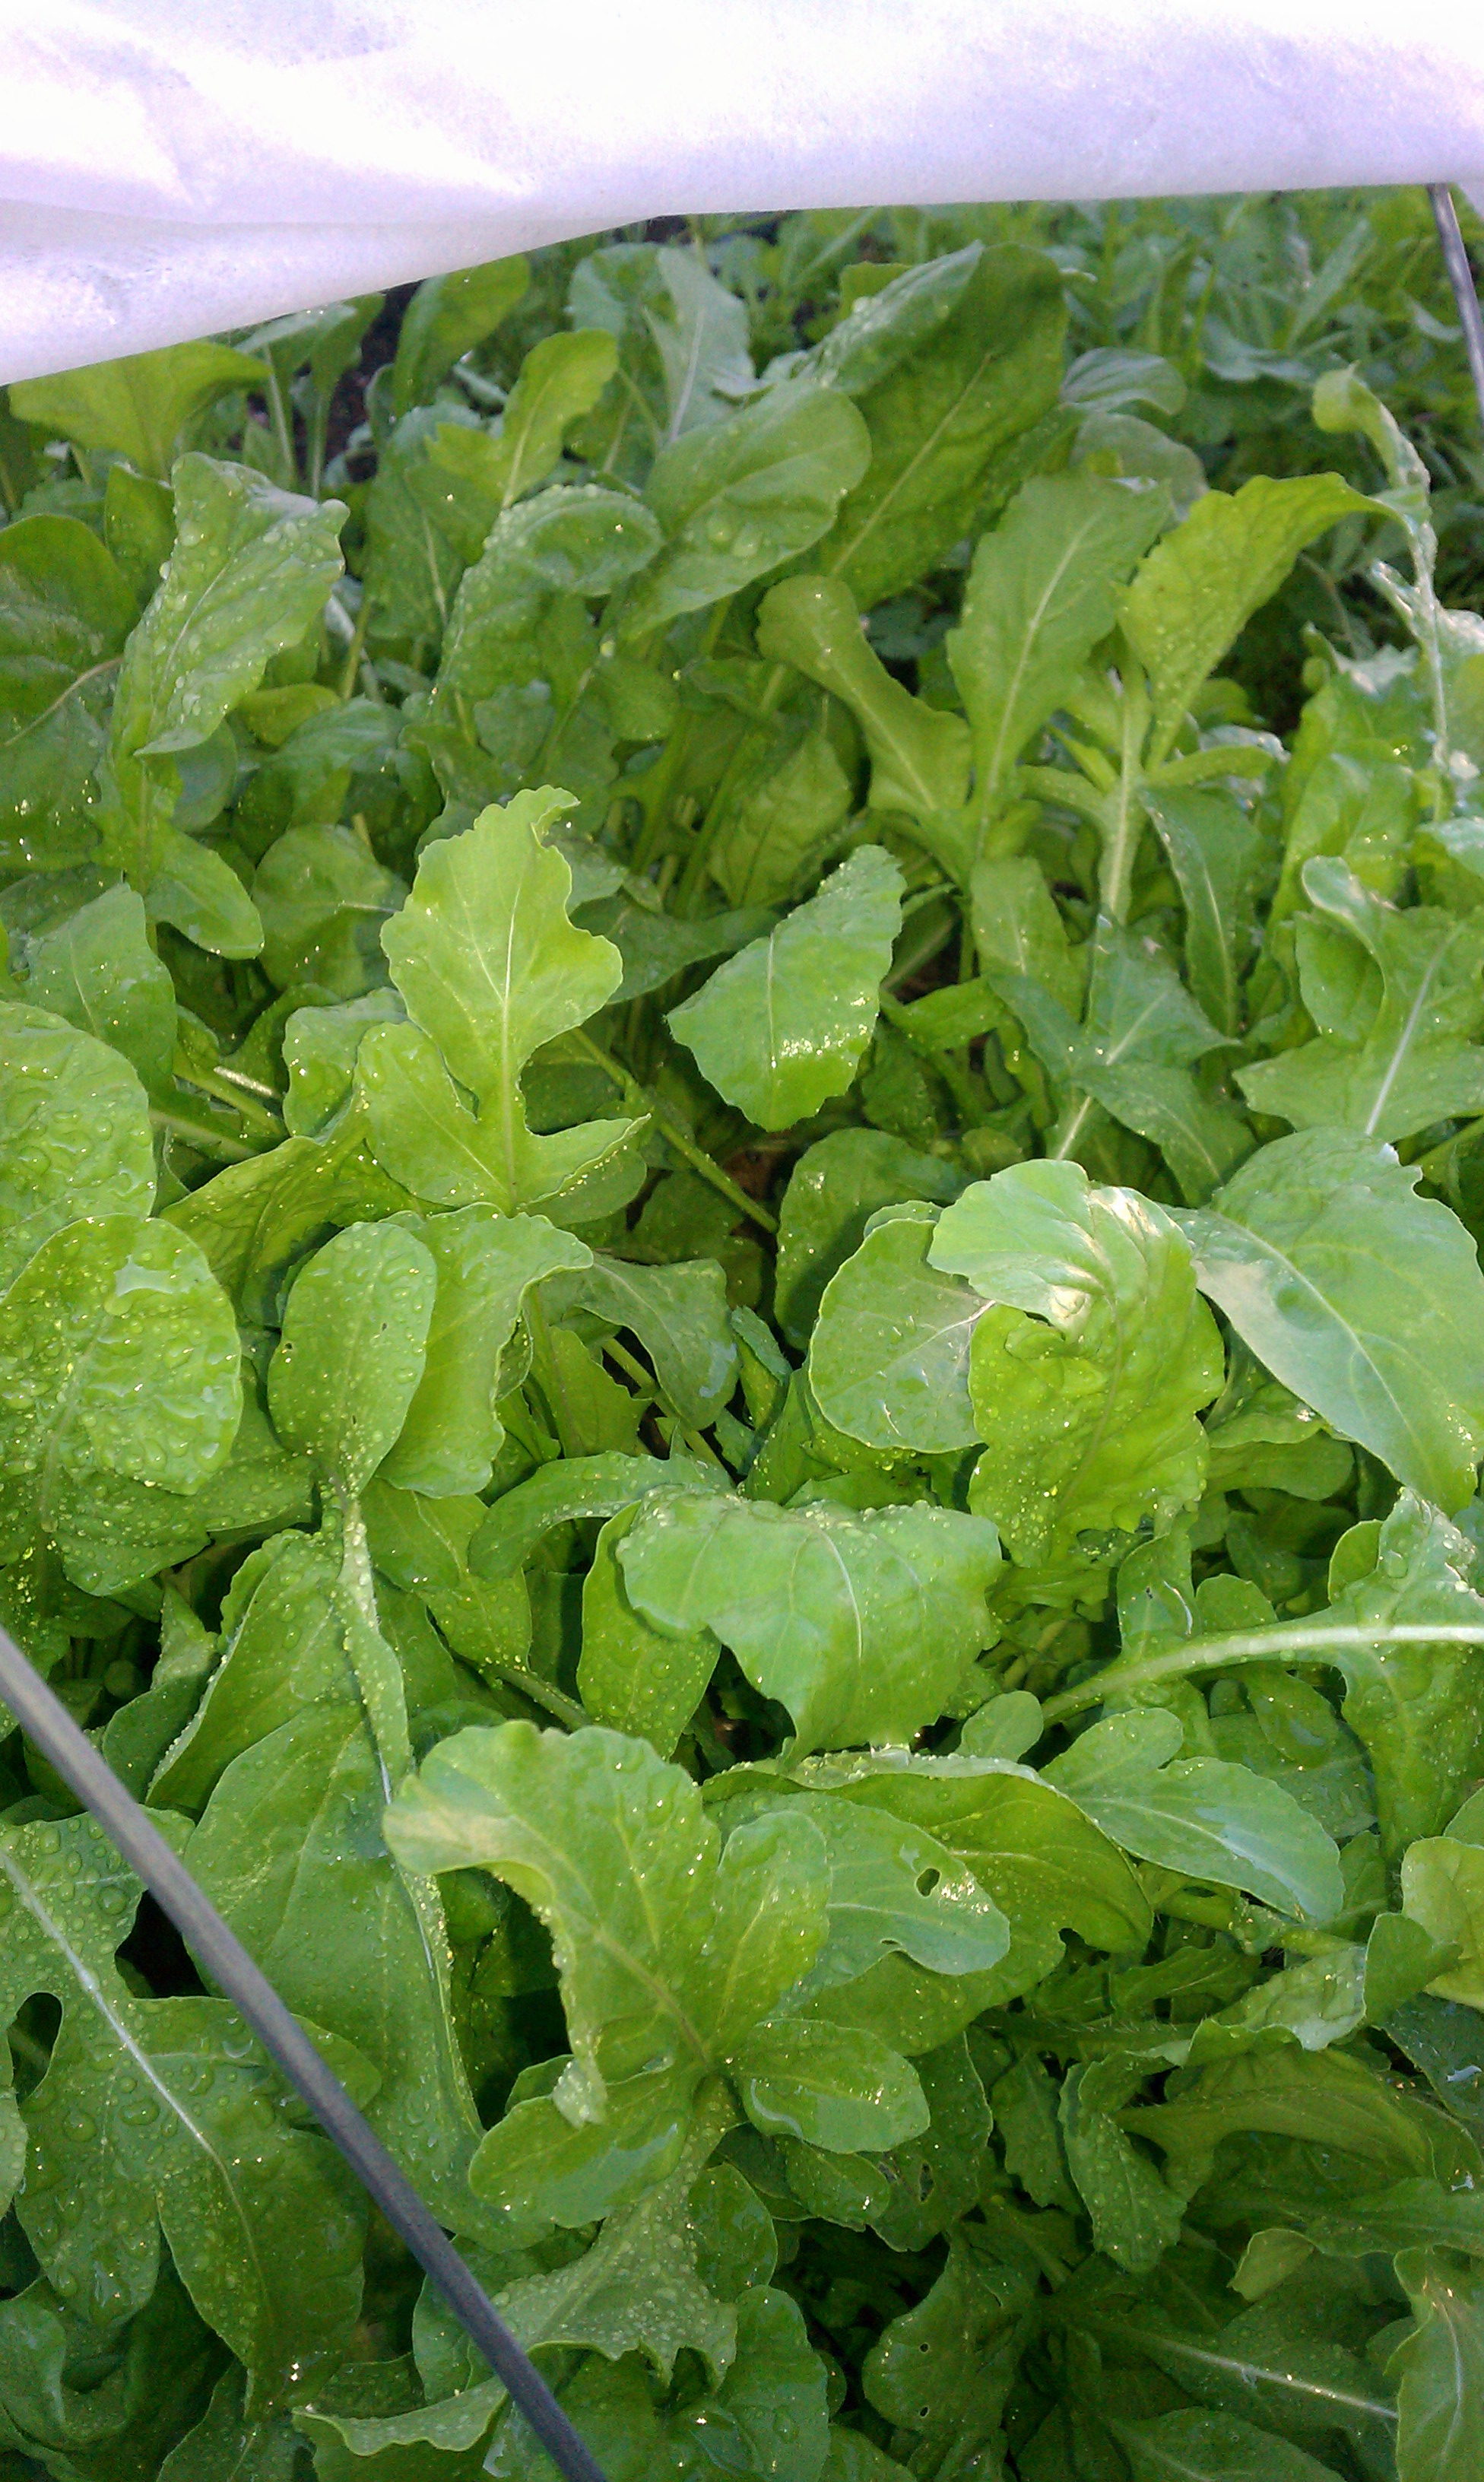 Is it possible to grow arugula at home on the window